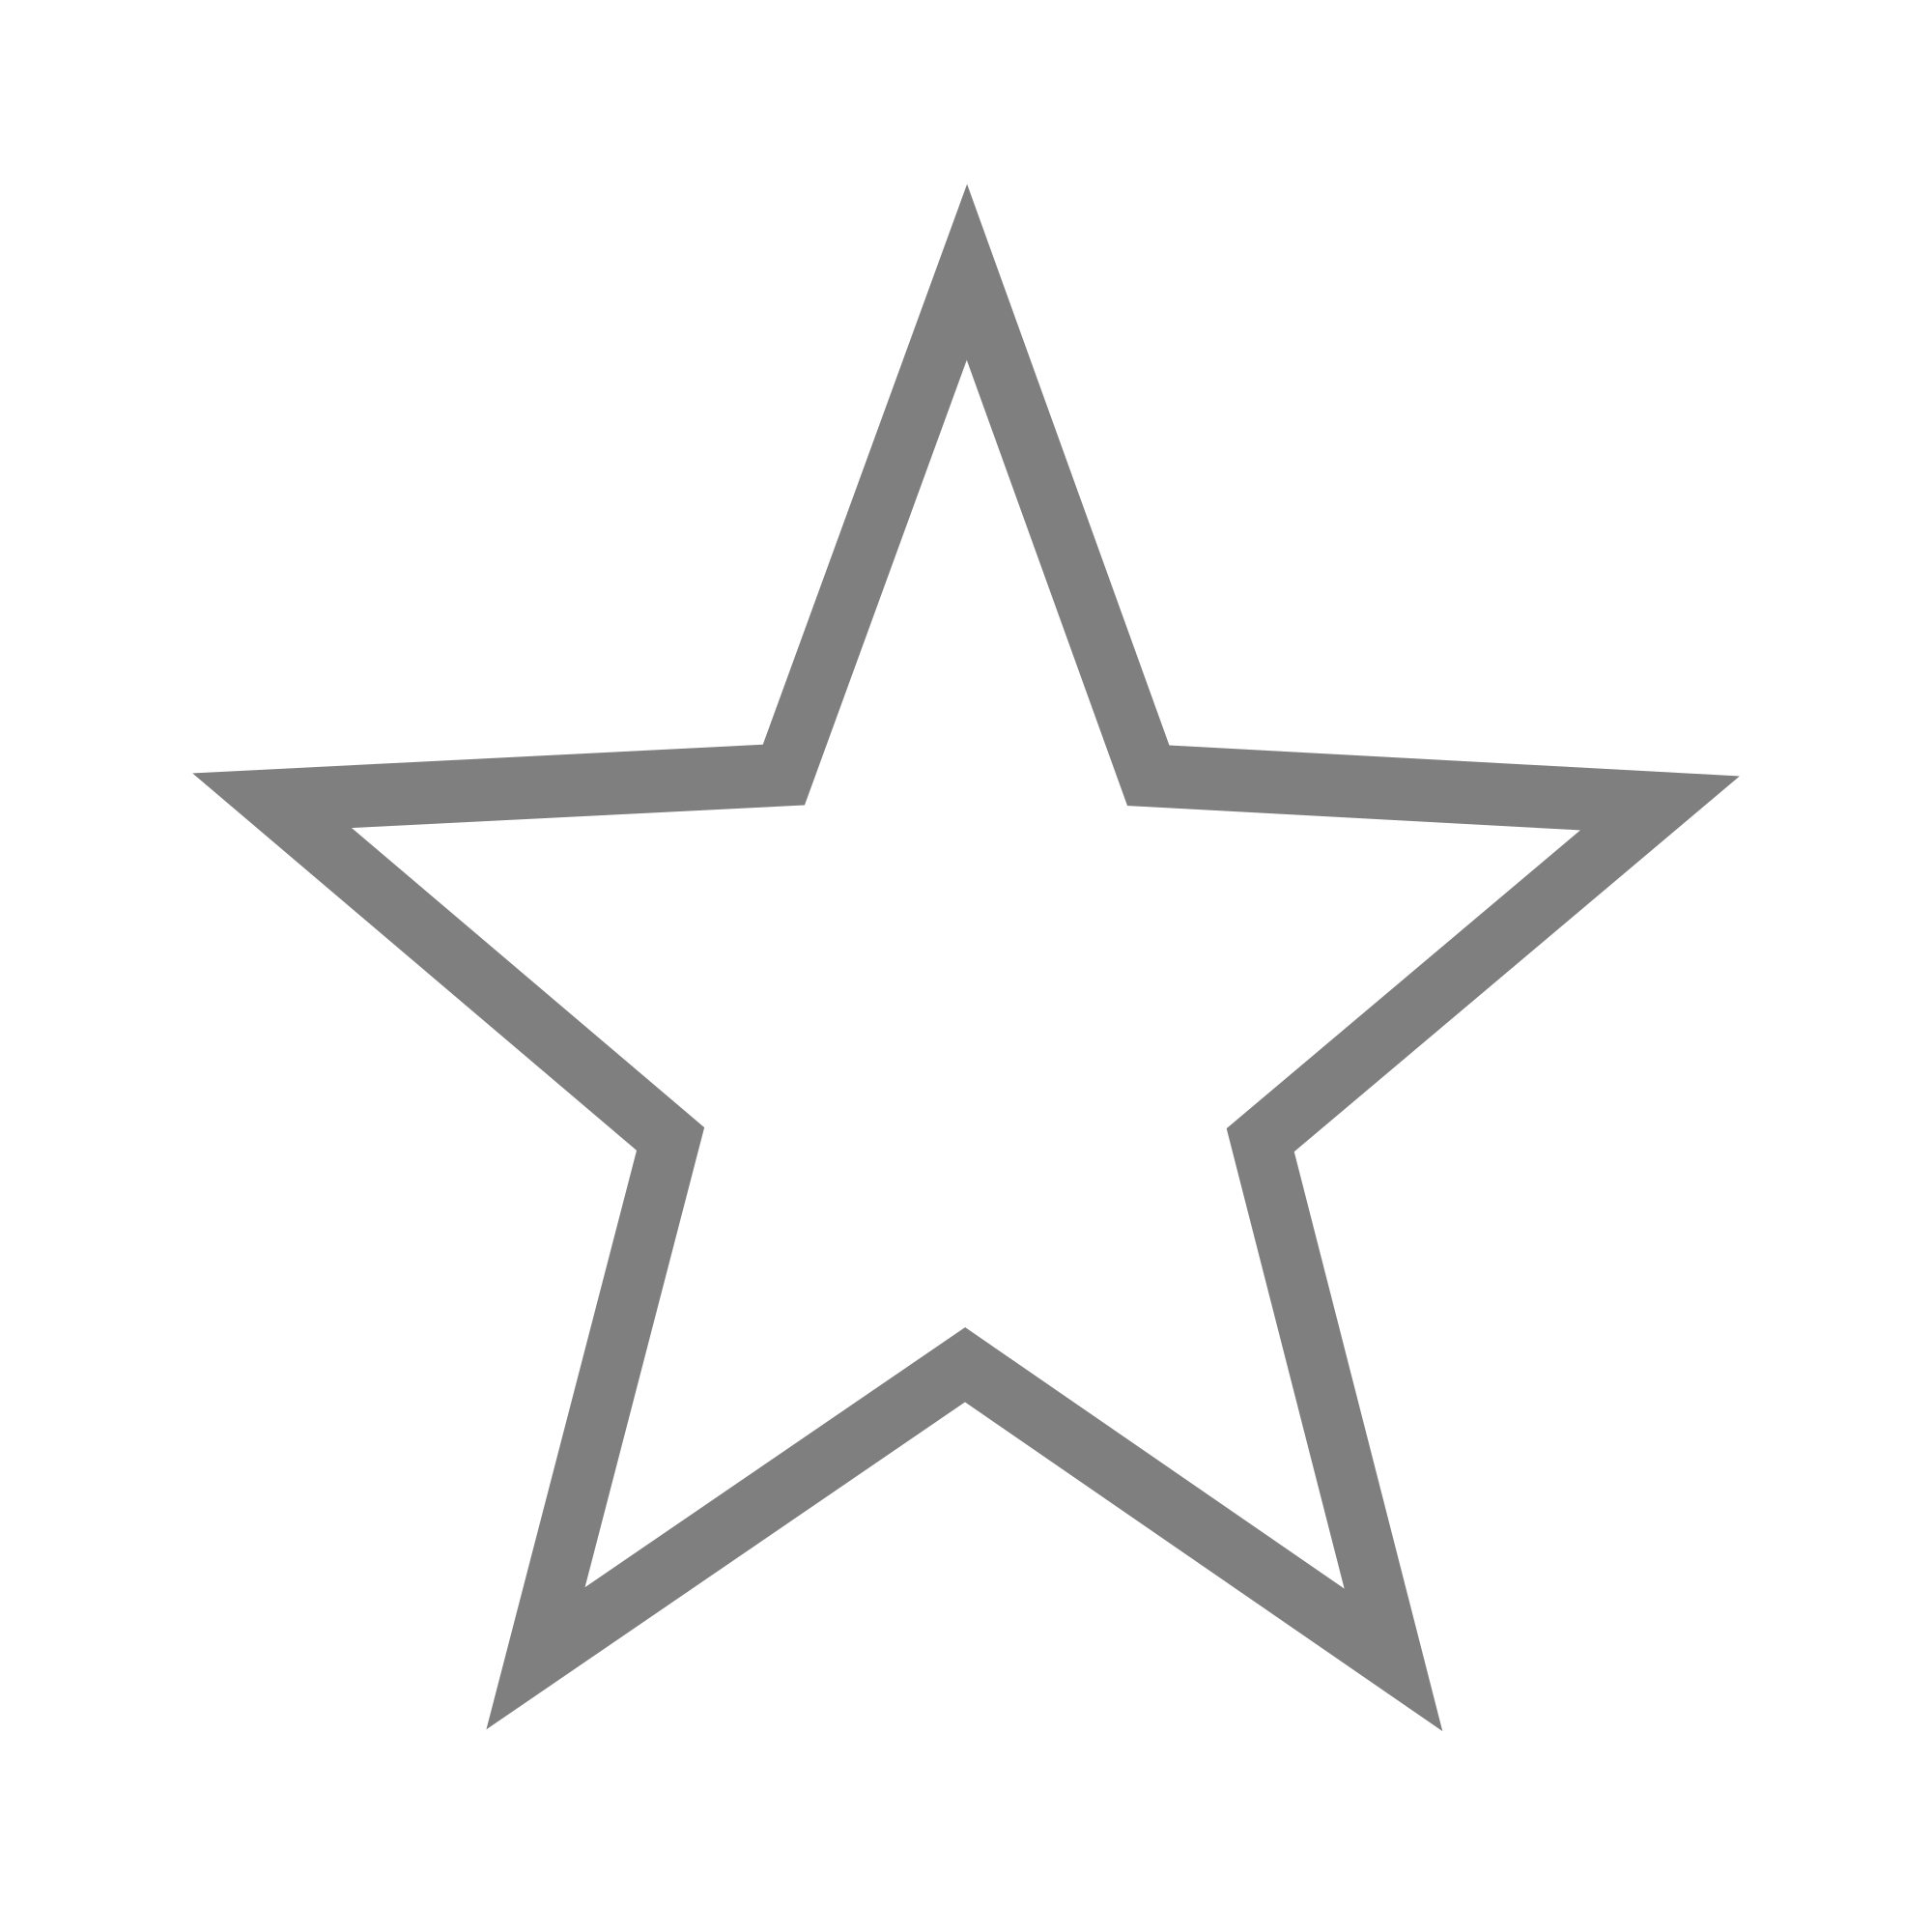 Star png. File empty svg wikimedia